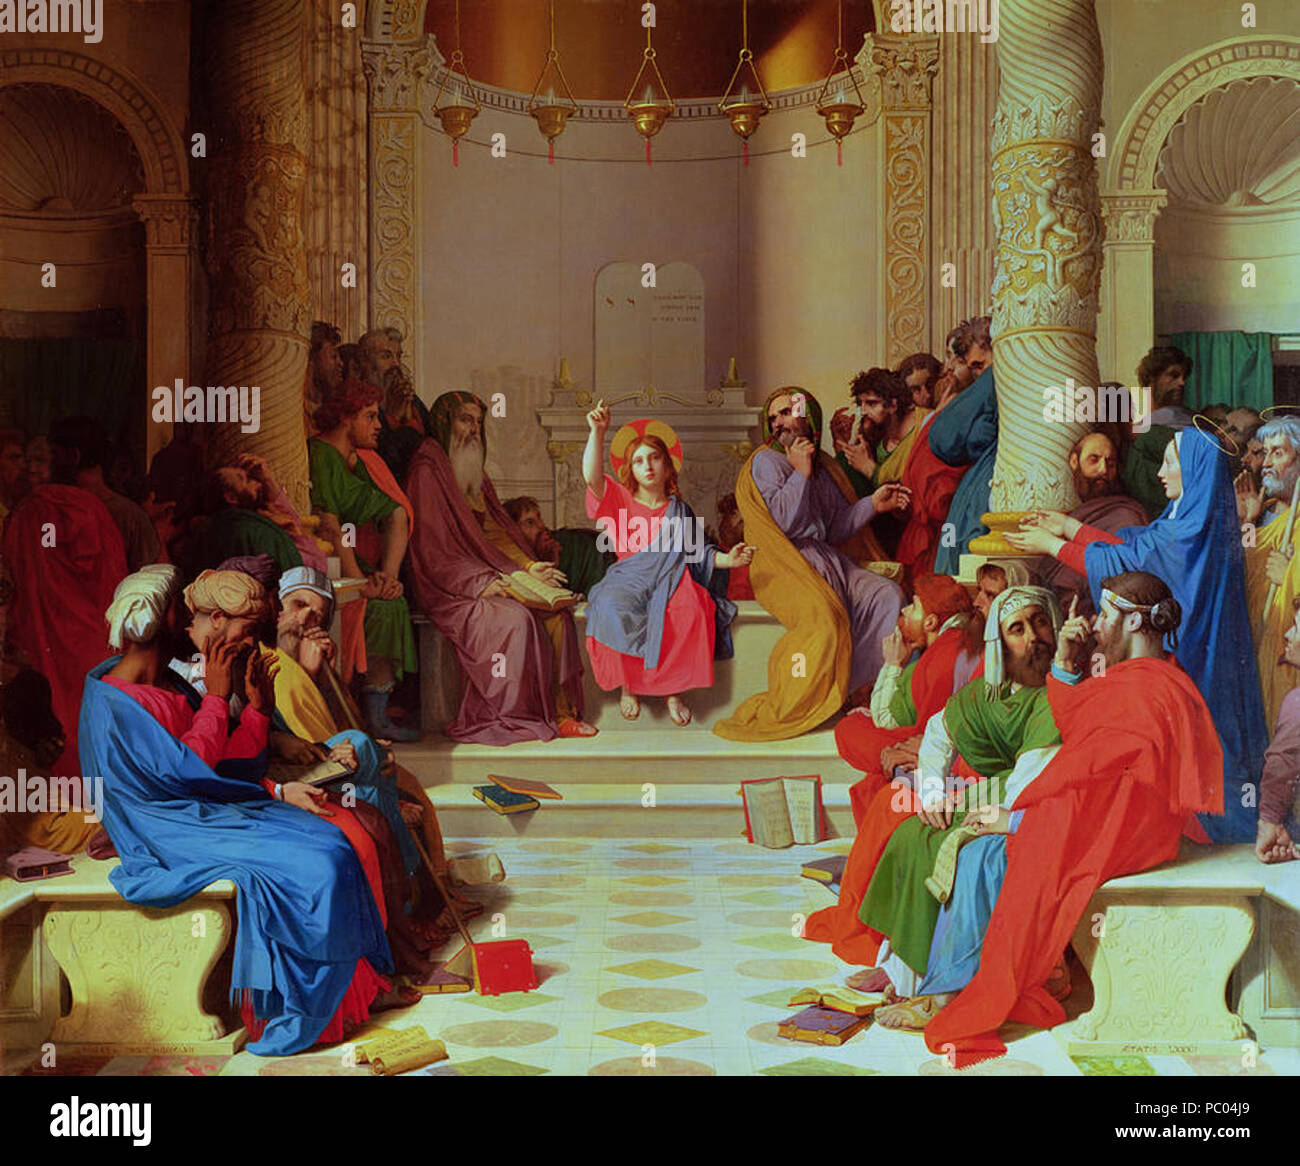 297 Ingres Jesus-among-the-doctors - Stock Image